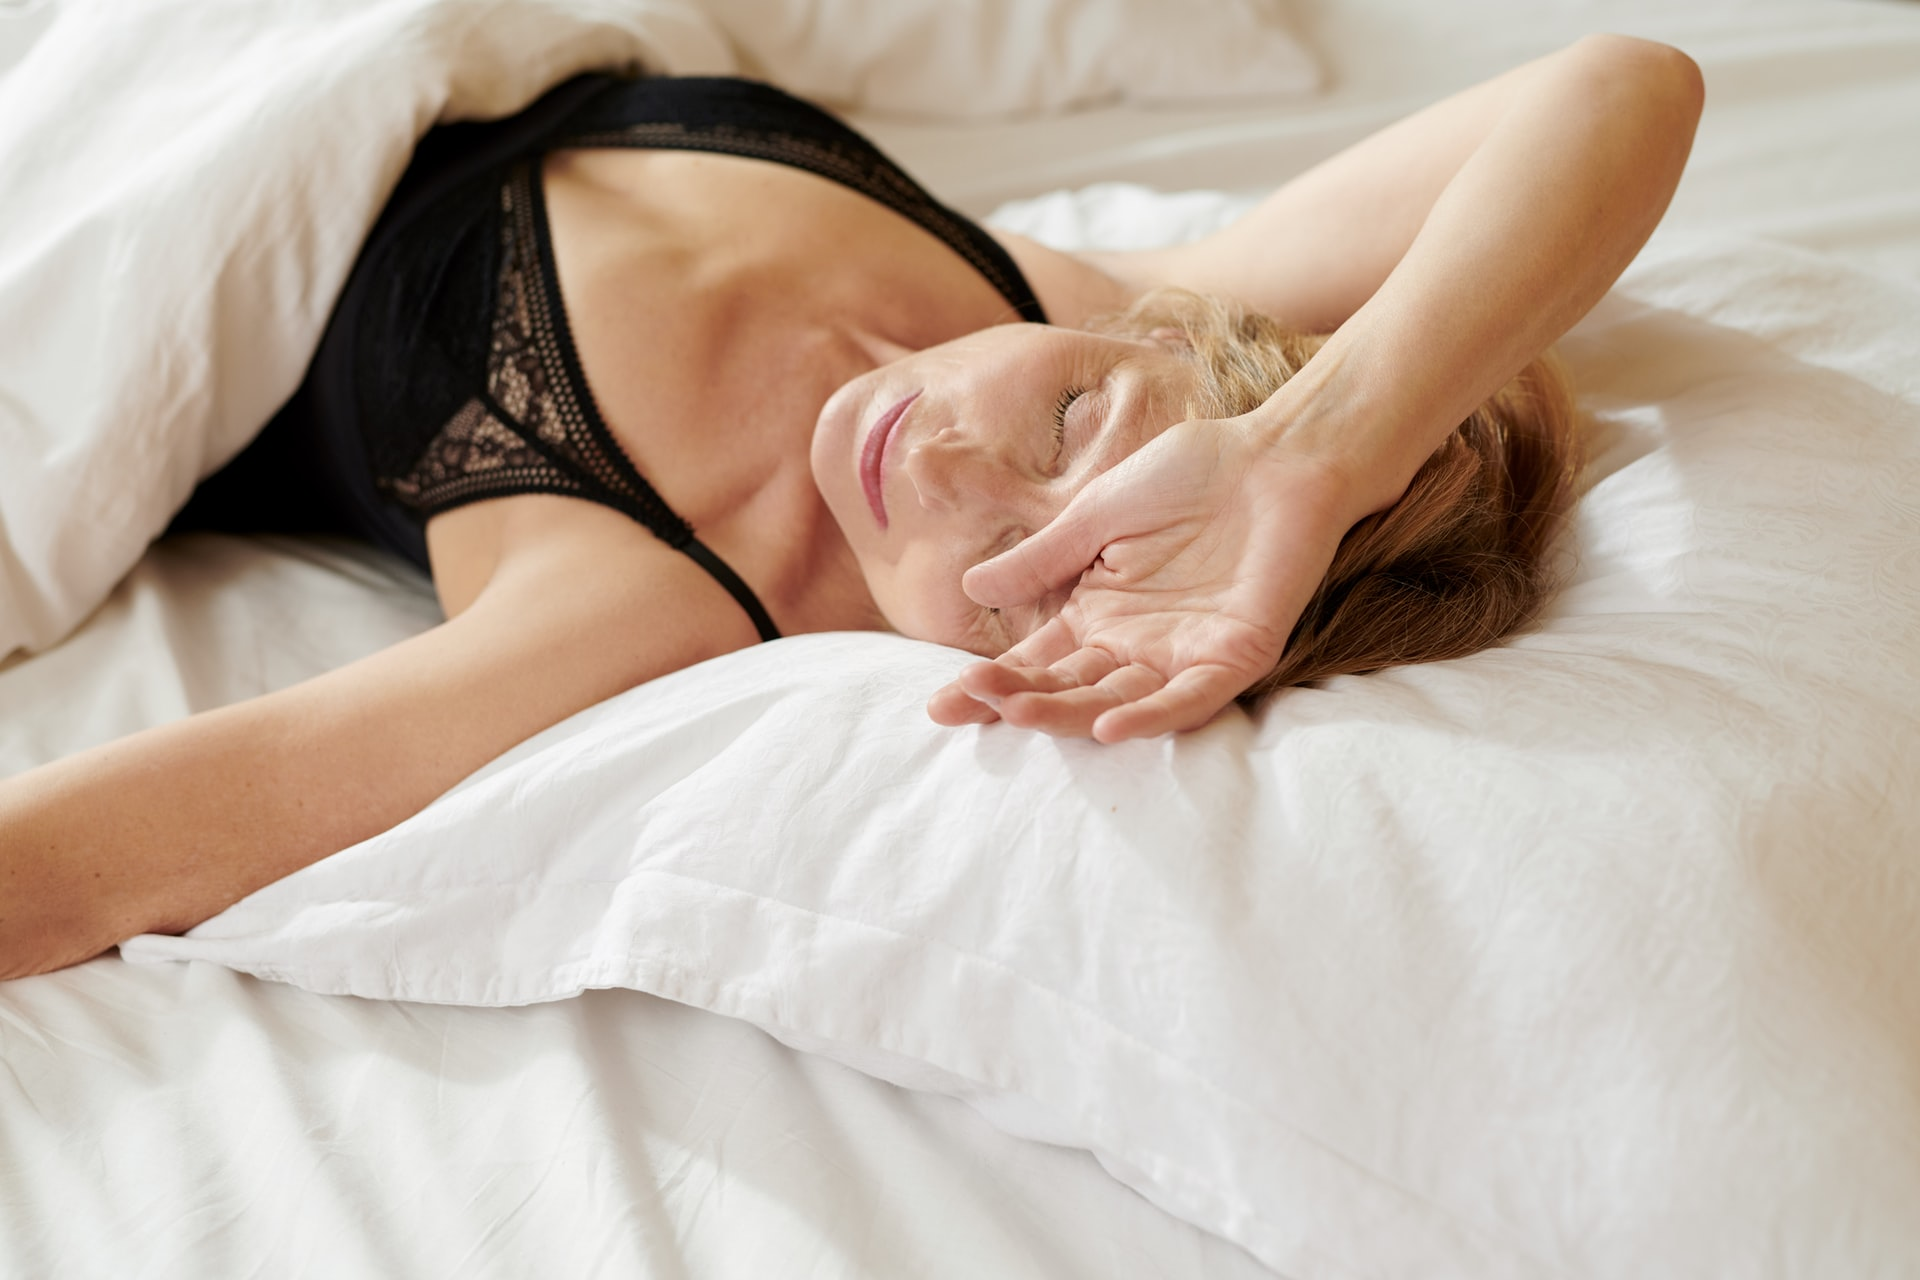 middle aged woman lying in bed, posed with arm on forehead, beauty